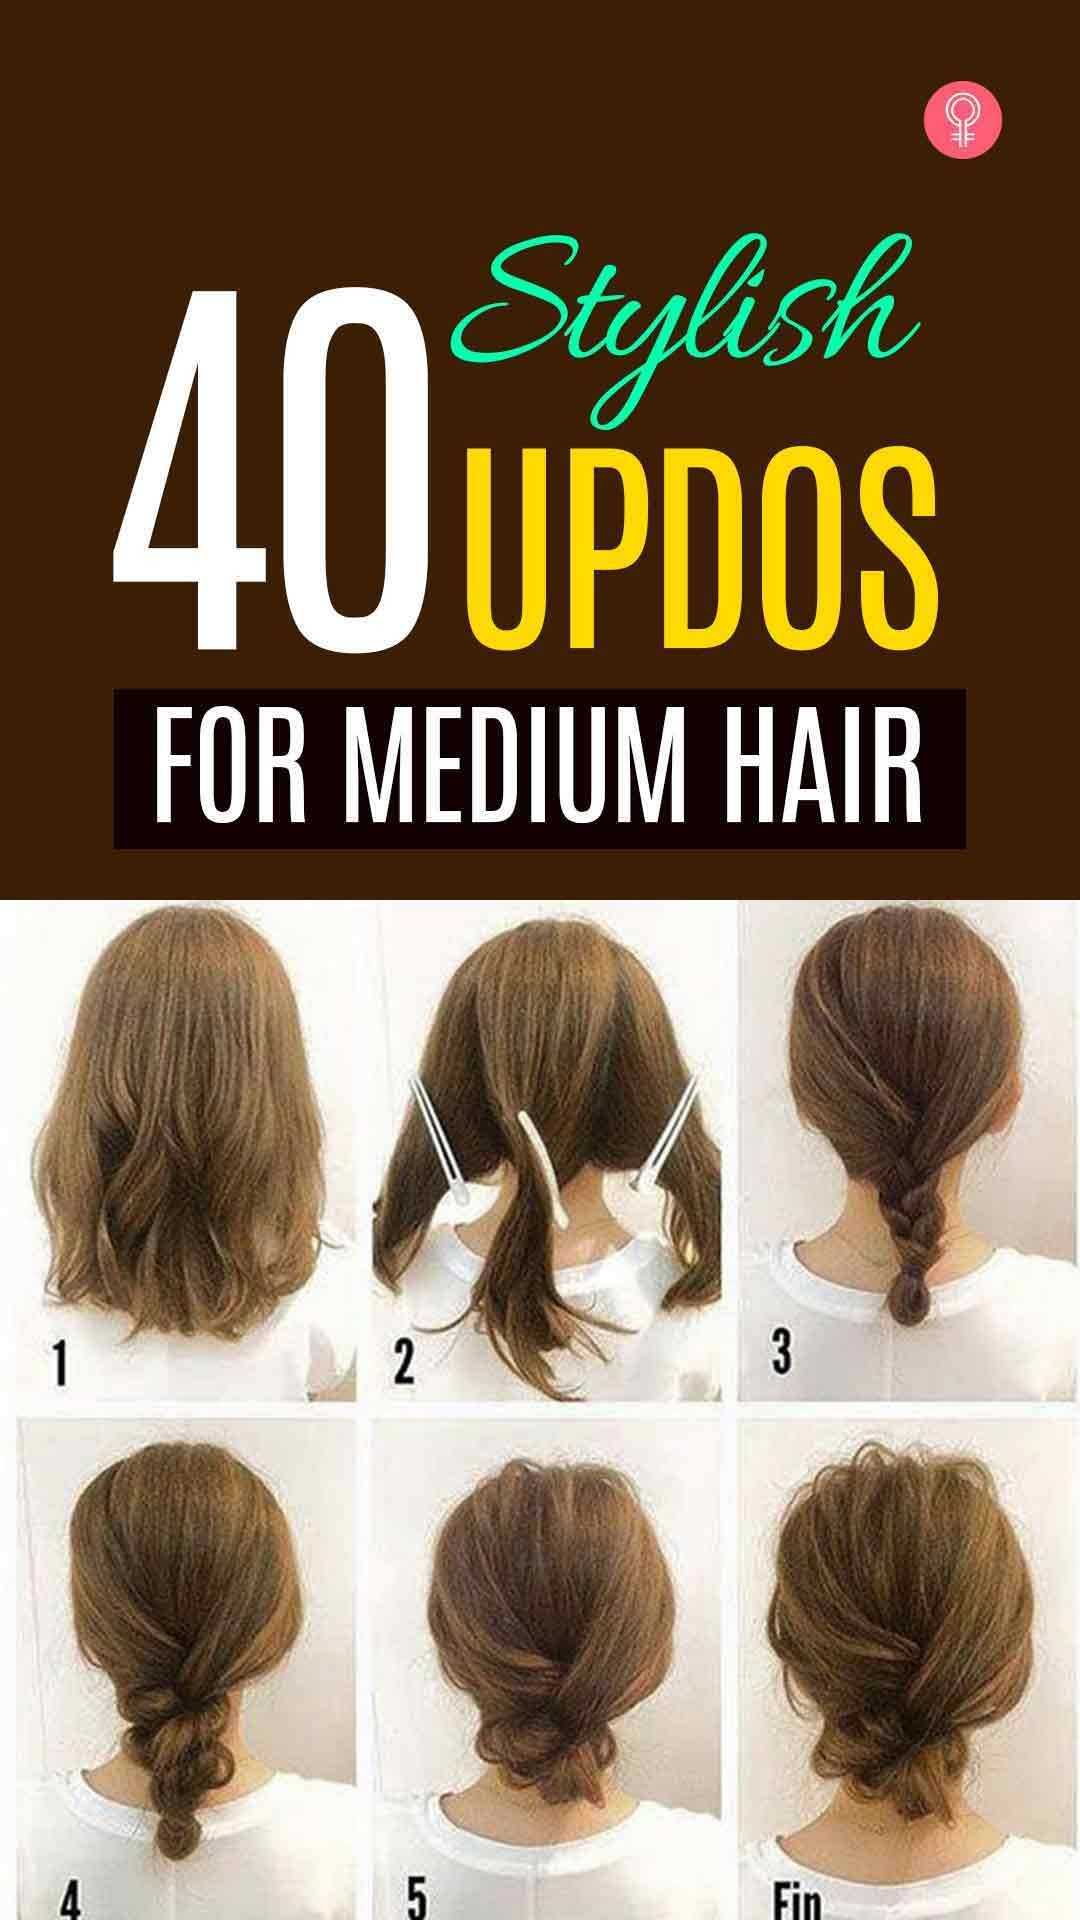 40 Quick And Easy Updos For Medium Hair -   17 easy hair Tips ideas